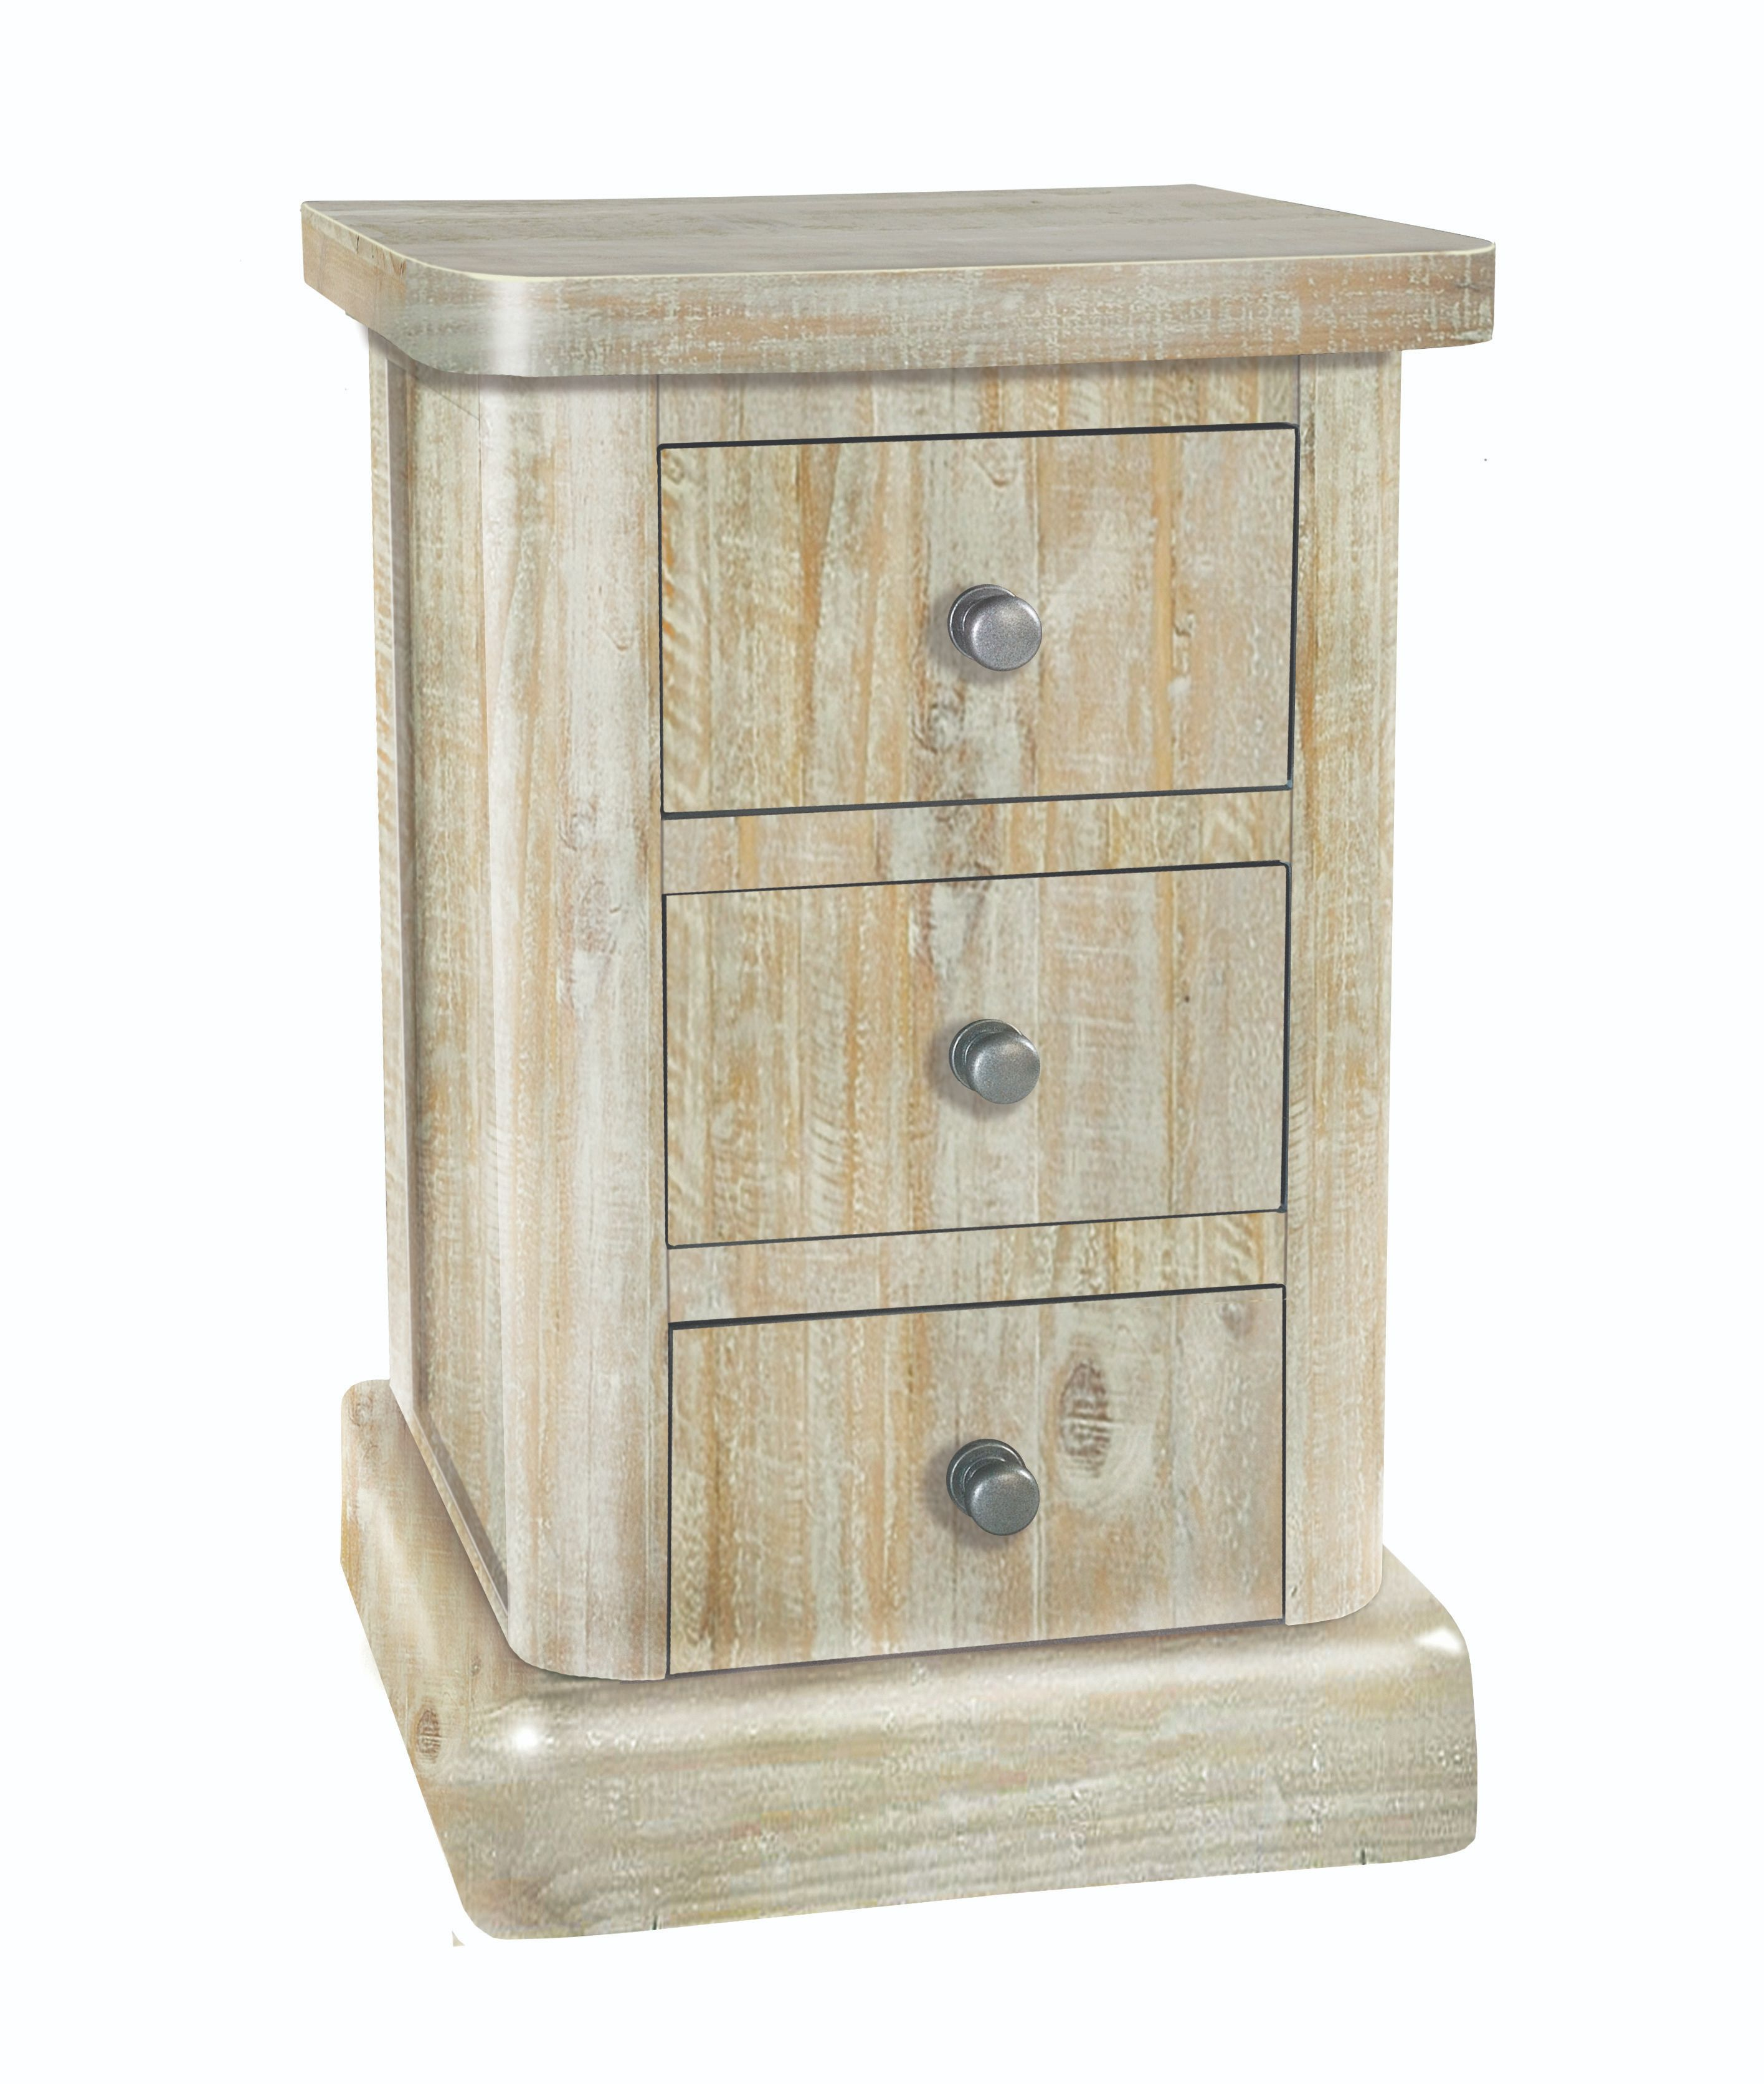 BROUGHTON 3 DRAWER LAMP CHEST In Lime-washed Timber